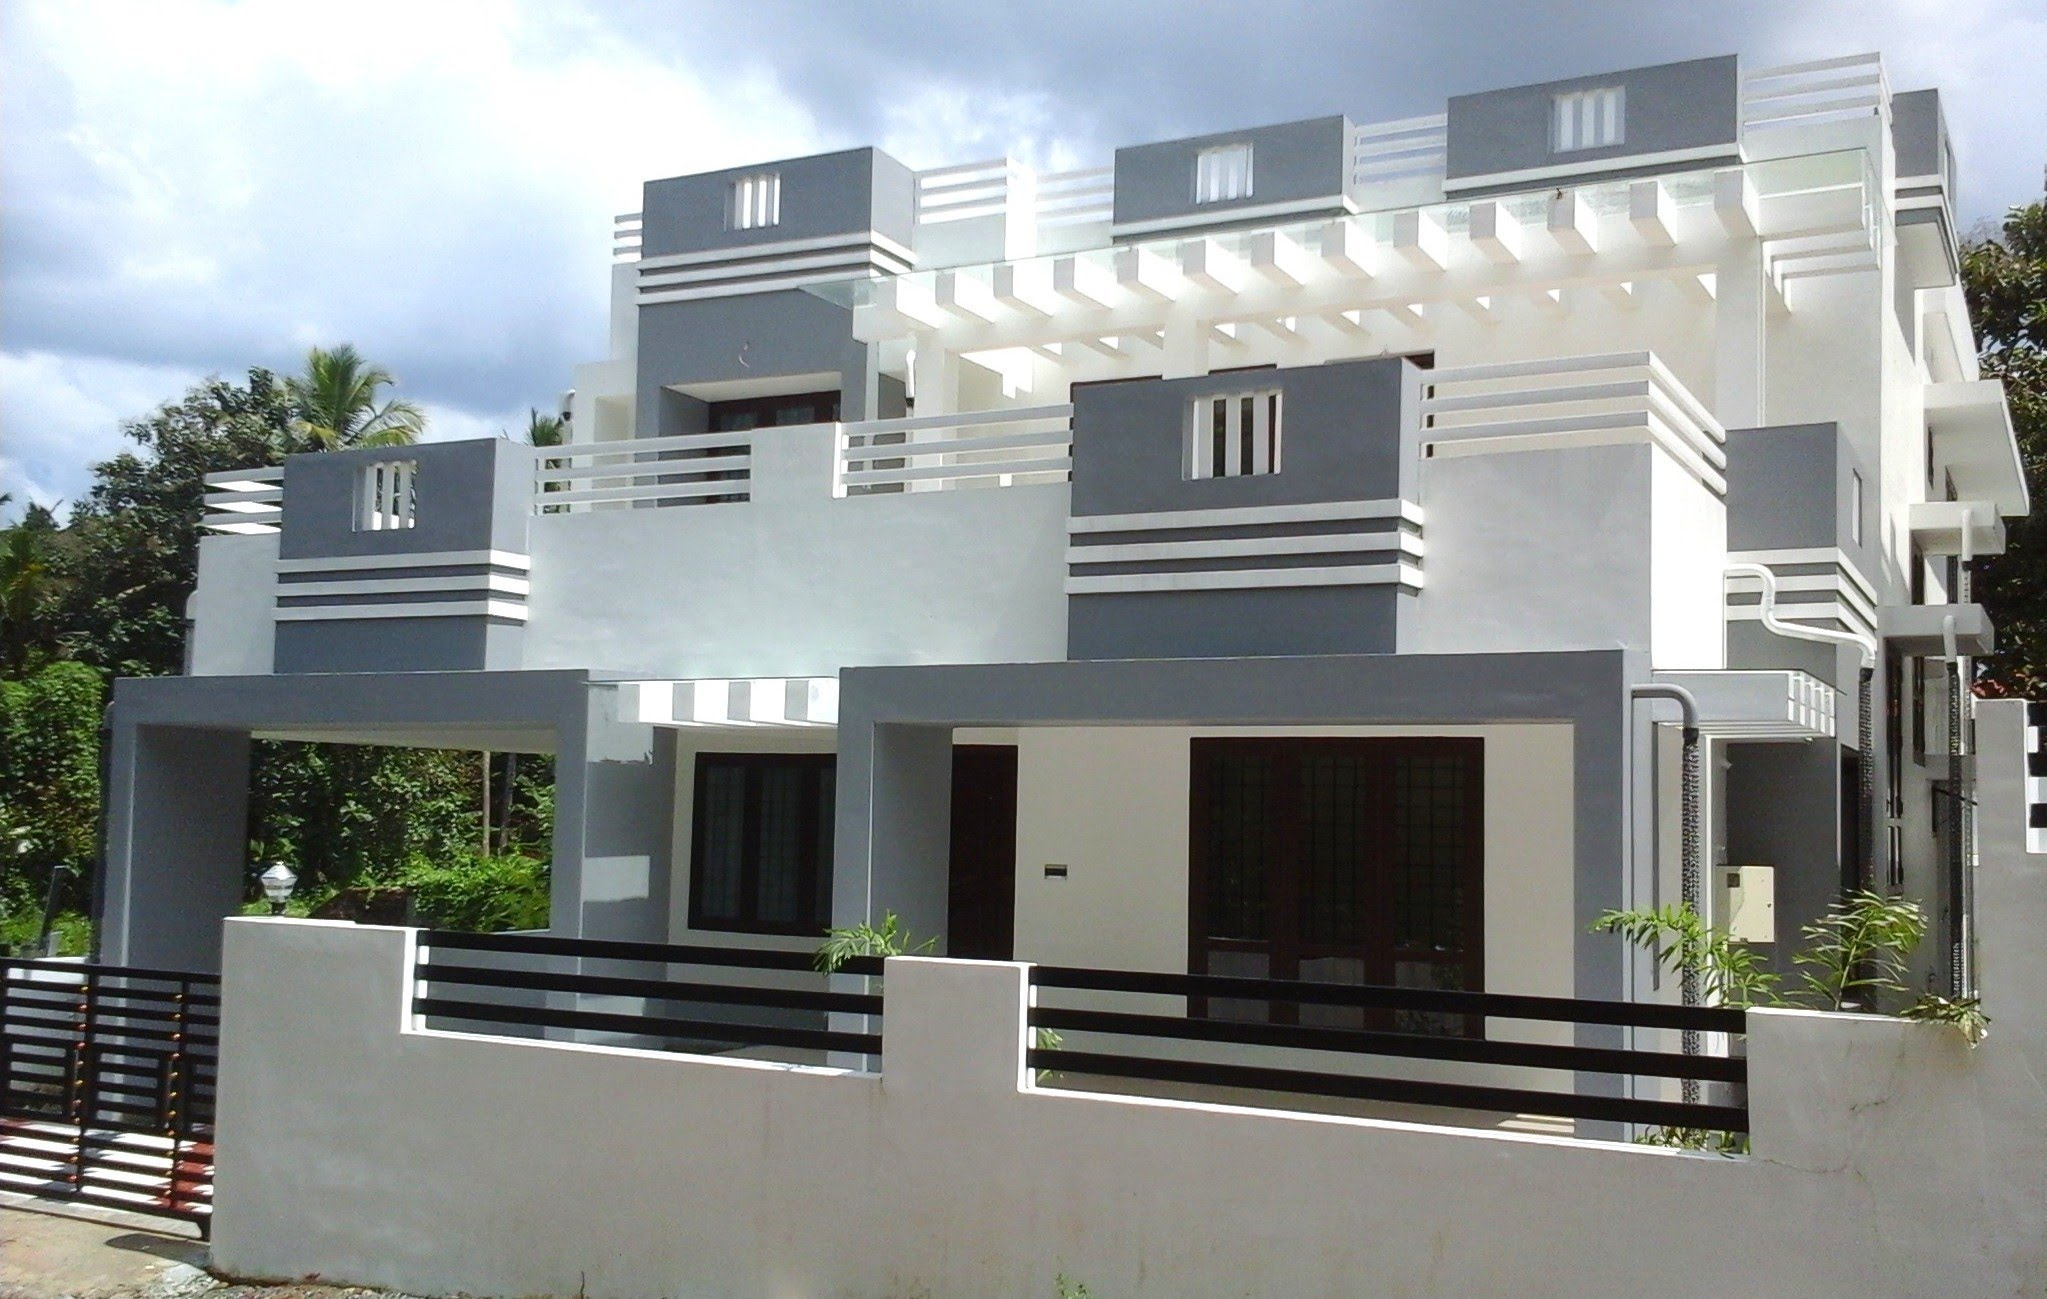 Villas in thrissur town villas in trichur thrissur villas thrissur builders forms tsr